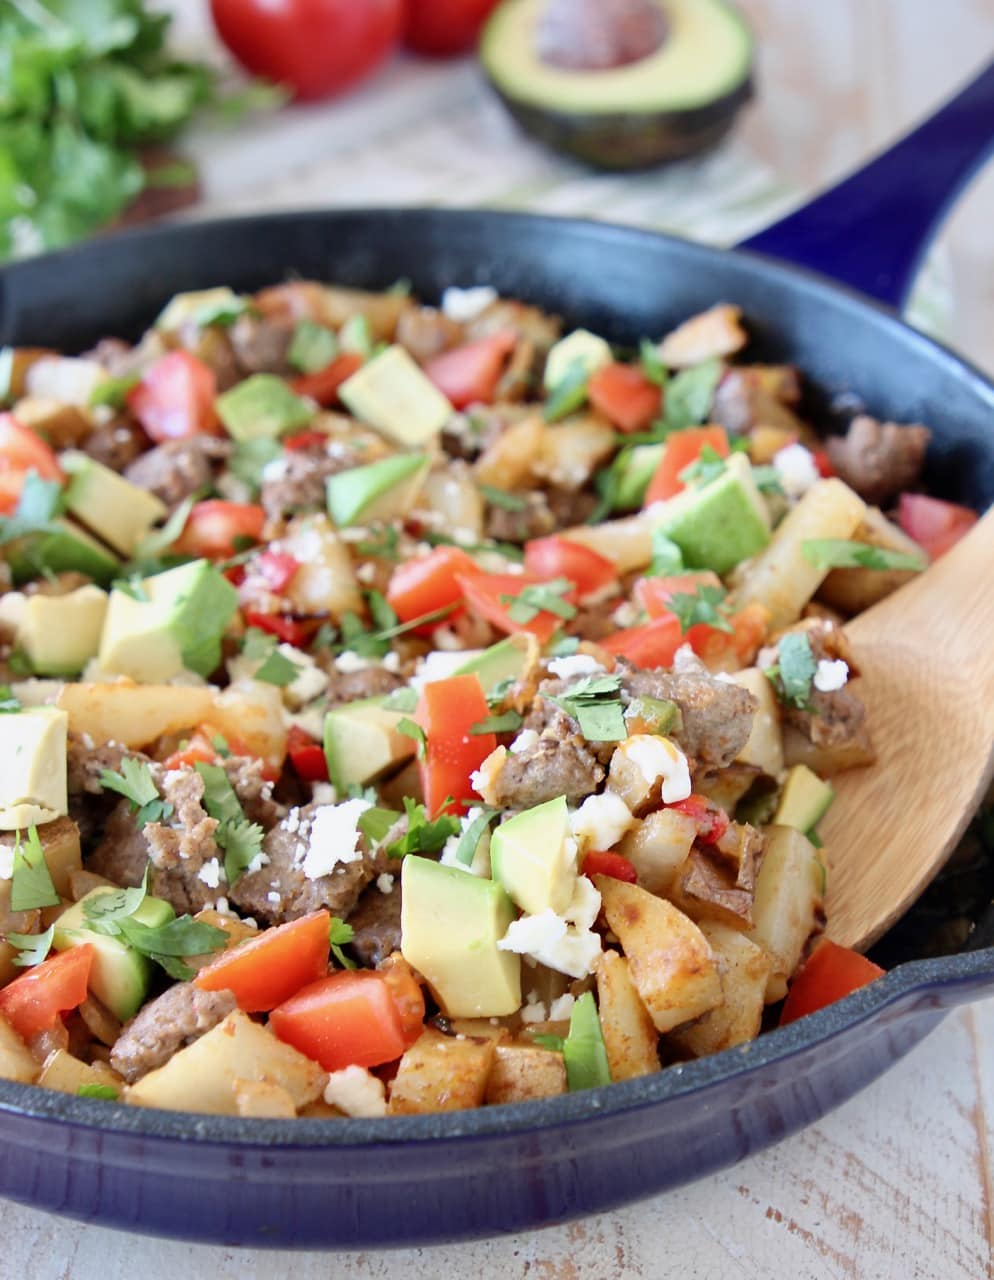 Breakfast hash in blue cast iron skillet with diced avocado, tomatoes, sausage and potatoes, with wooden spoon in skillet and fresh cilantro in background